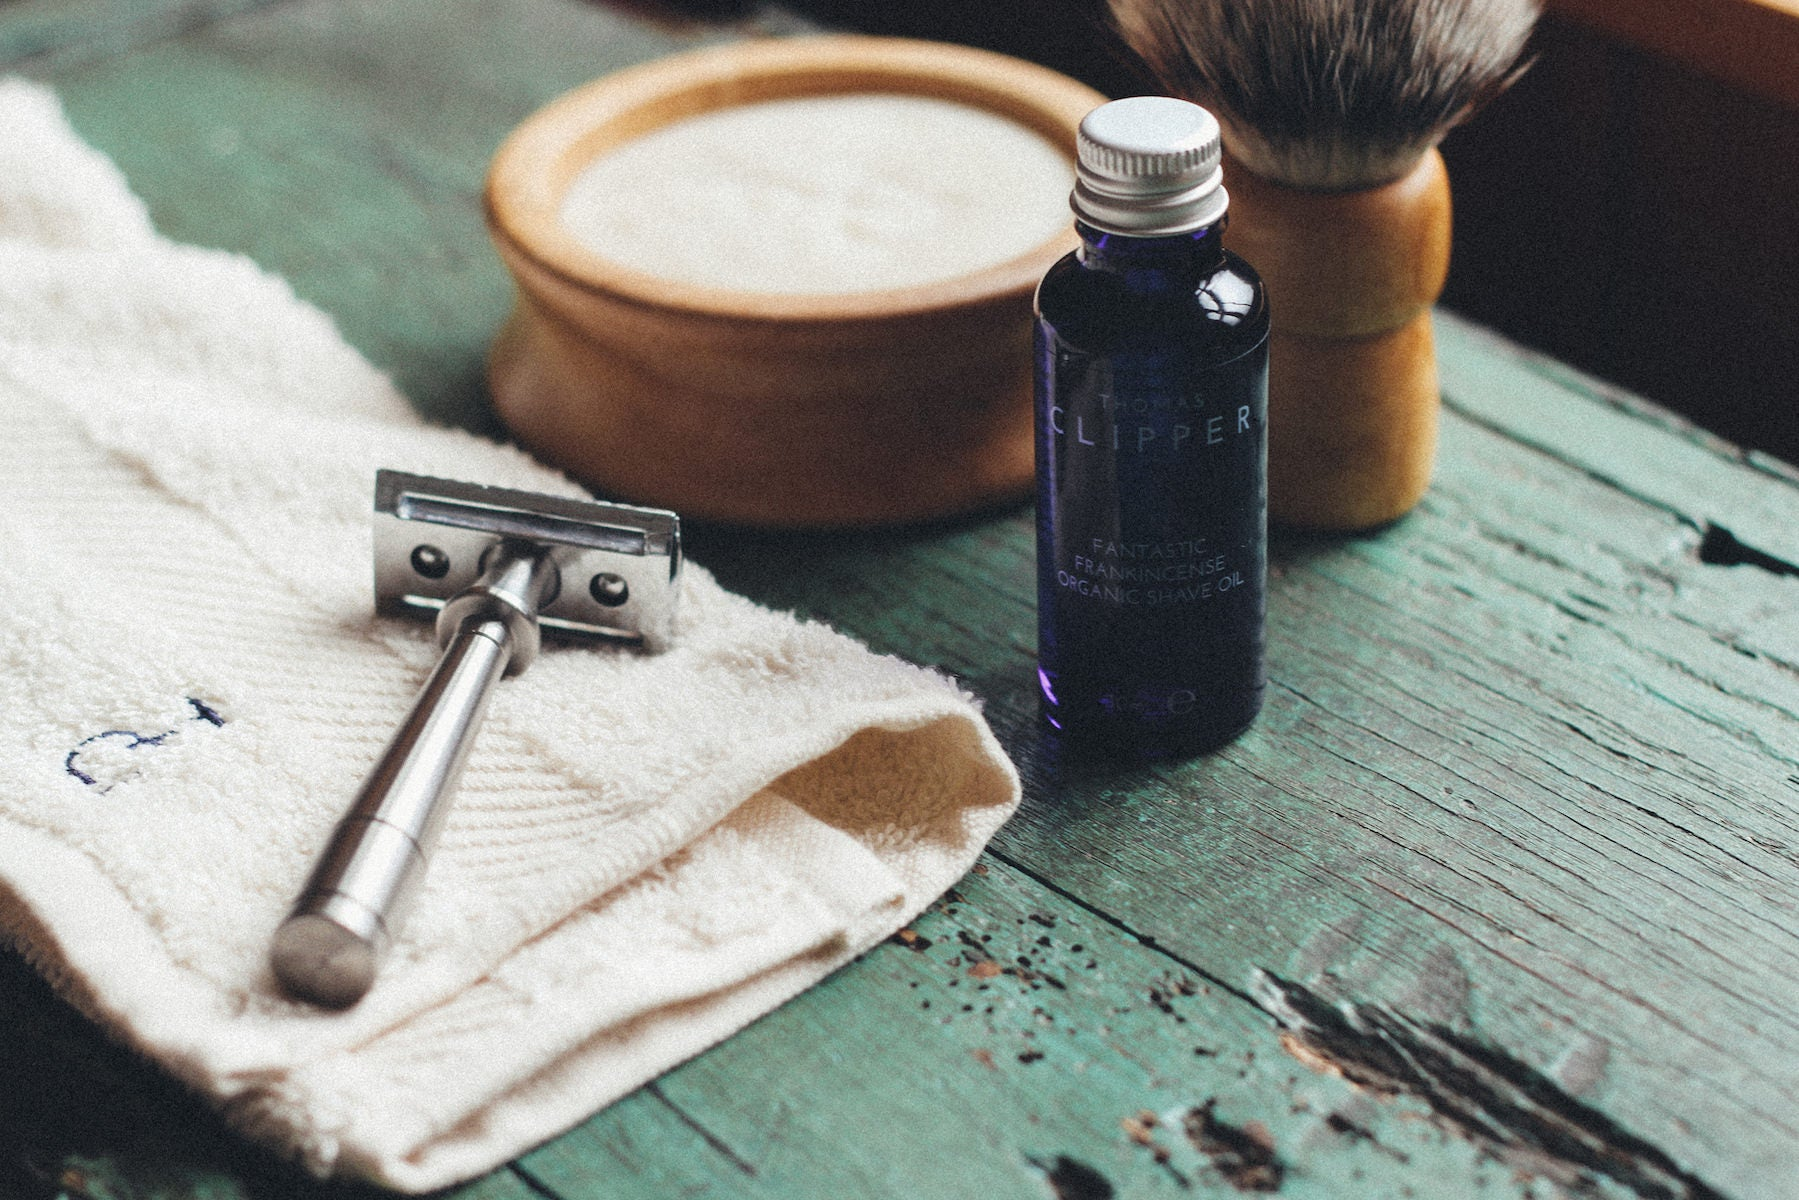 Everything you need for the perfect shave: from lather to blade. From Thomas Clipper.